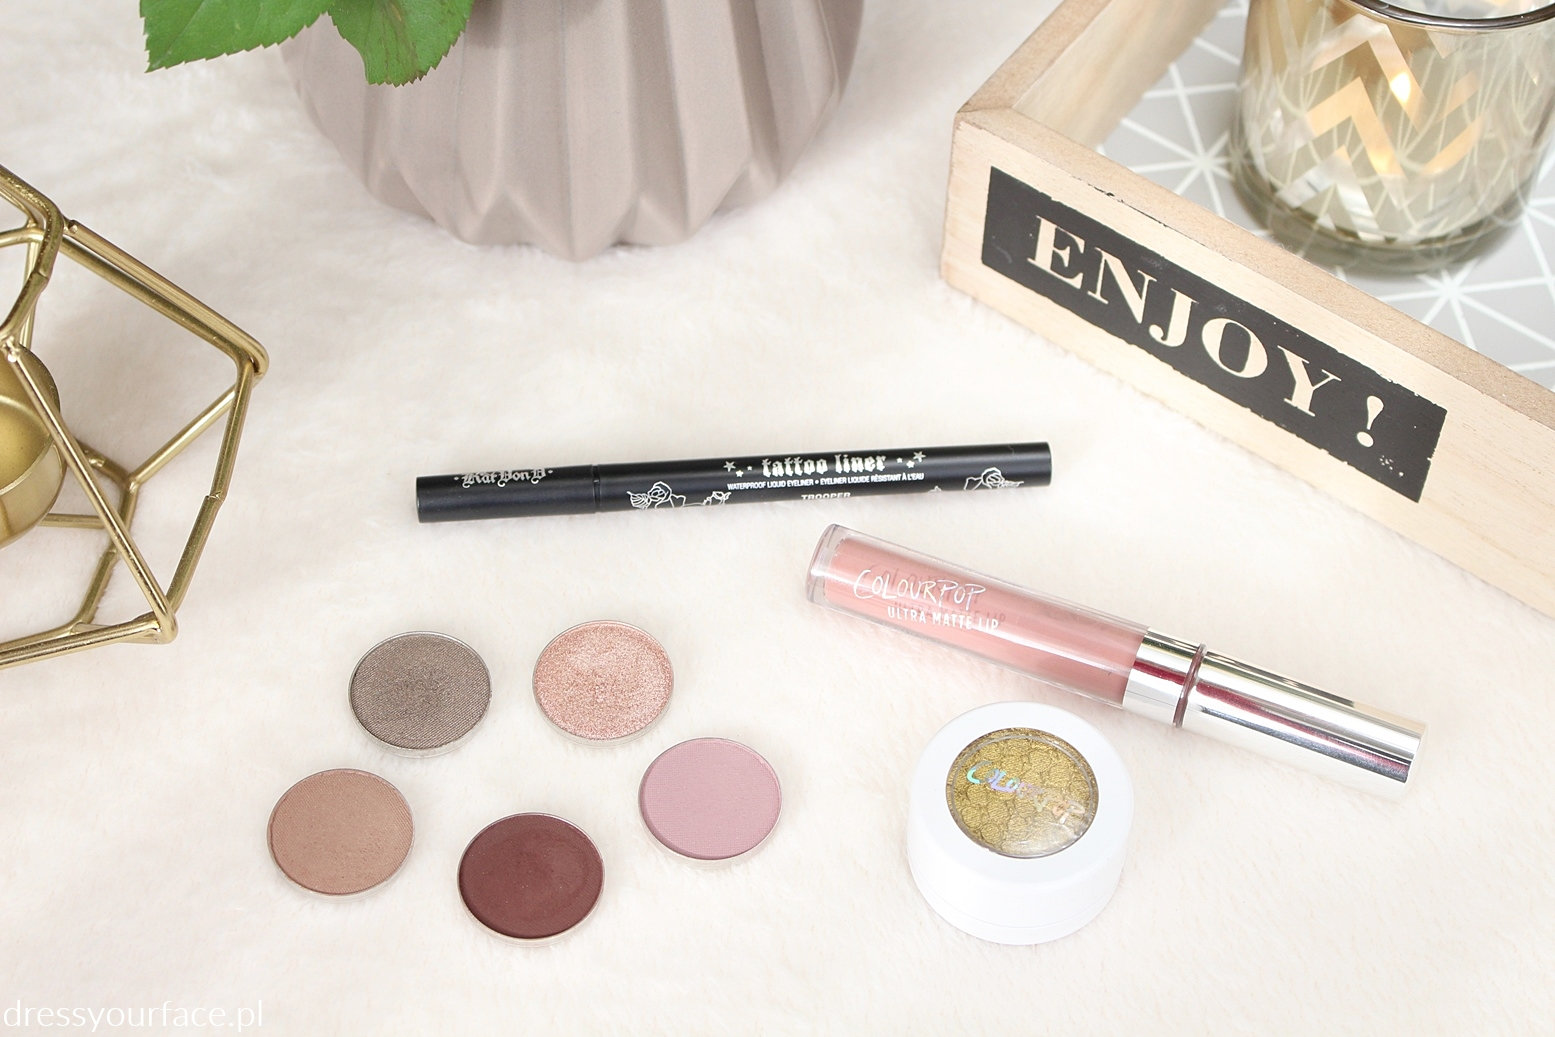 tag_youtube_made_me_buy_it_makeup_geek_colourpop